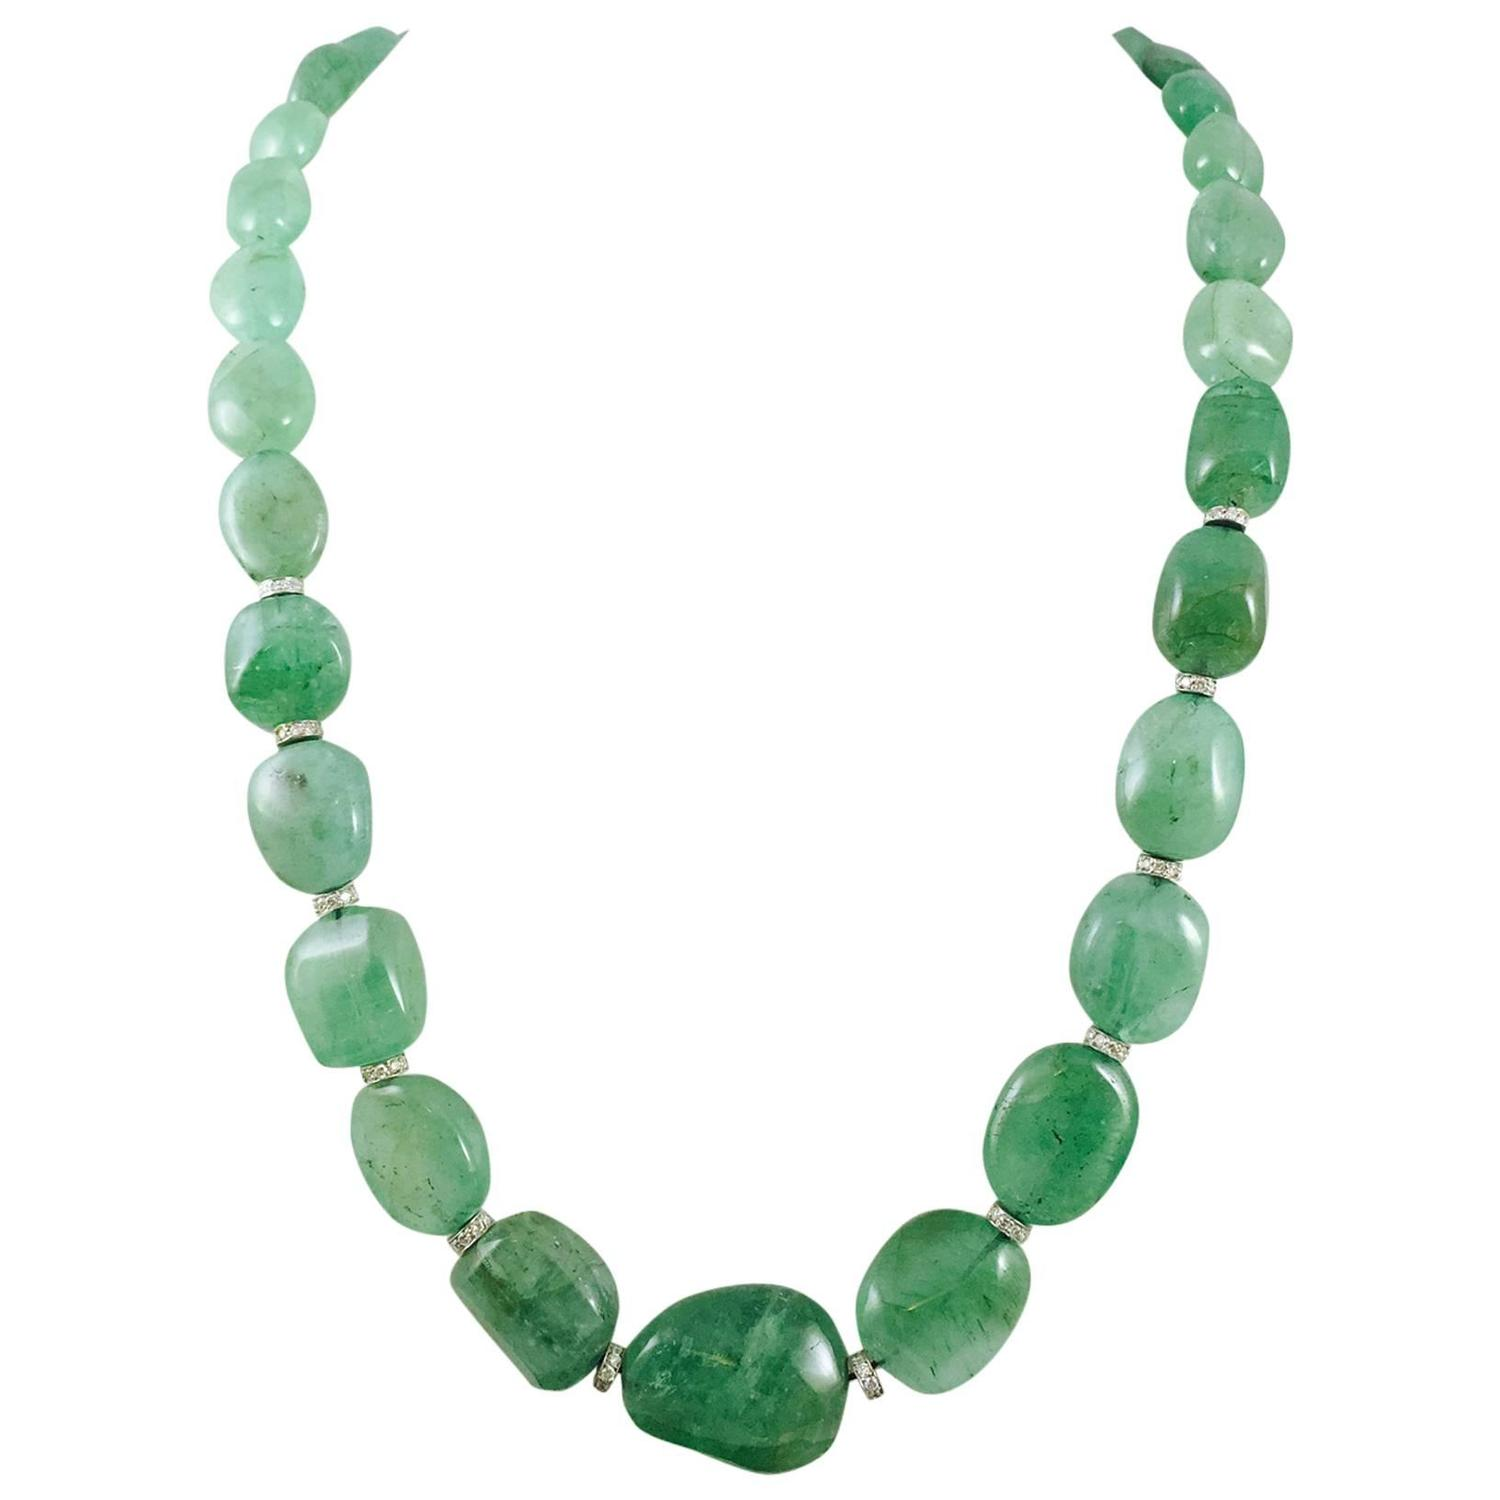 alluring emerald bead necklace with rondelles for